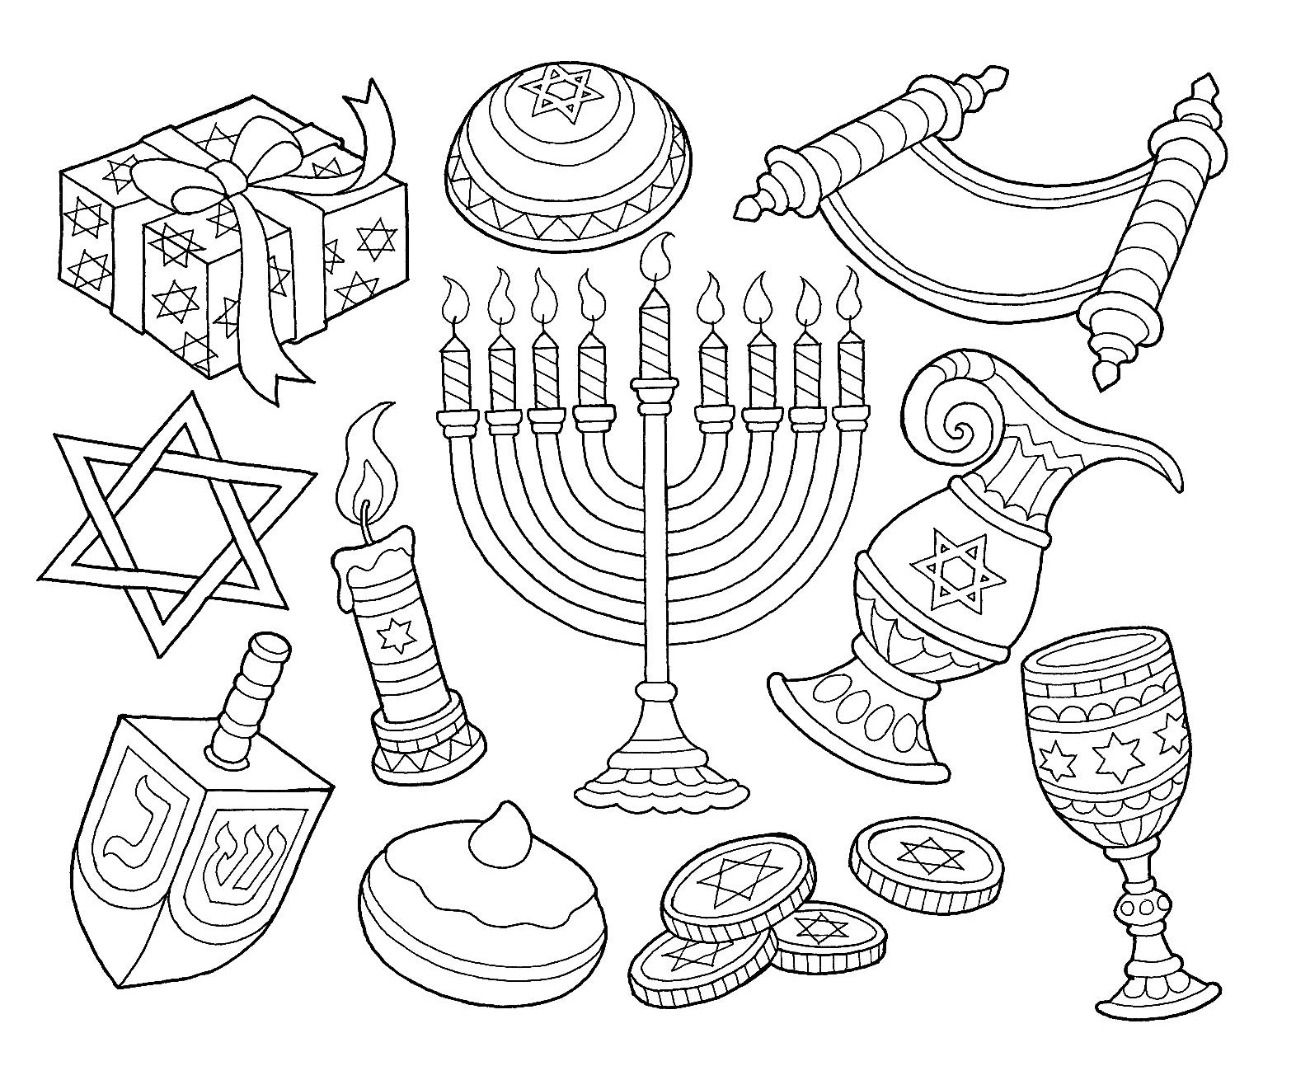 Hanukkah Coloring Pages Hanukkah Coloring Pages Coloring Rocks Check Out The Collection Of Hanukkah Coloring Pages Here And Choose Your Favorite Ones Reihanhijab